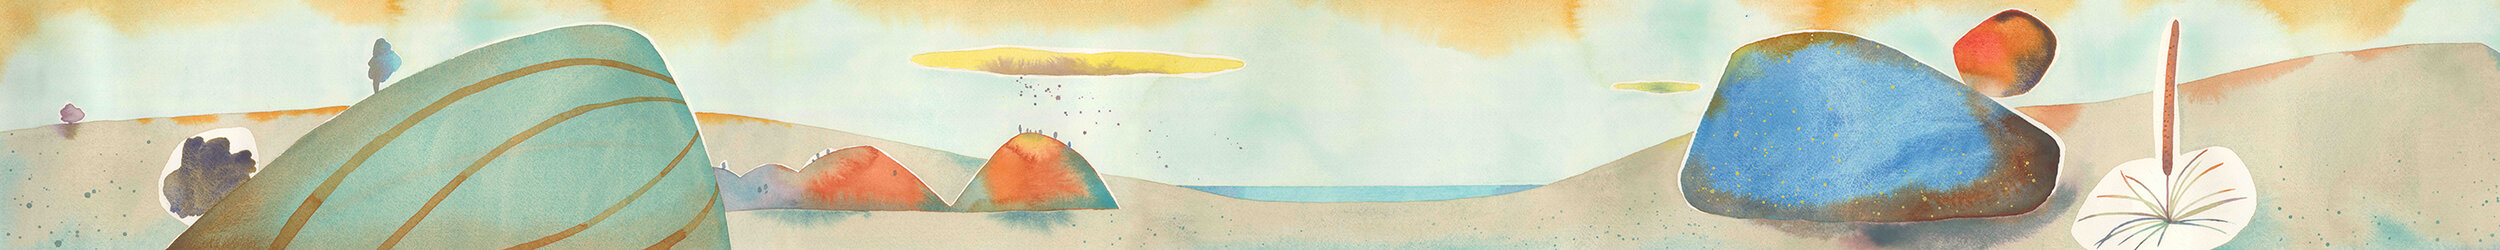 Flinders To Fleurieu #4. Watercolour on Arches, 300mm x 2500mm.